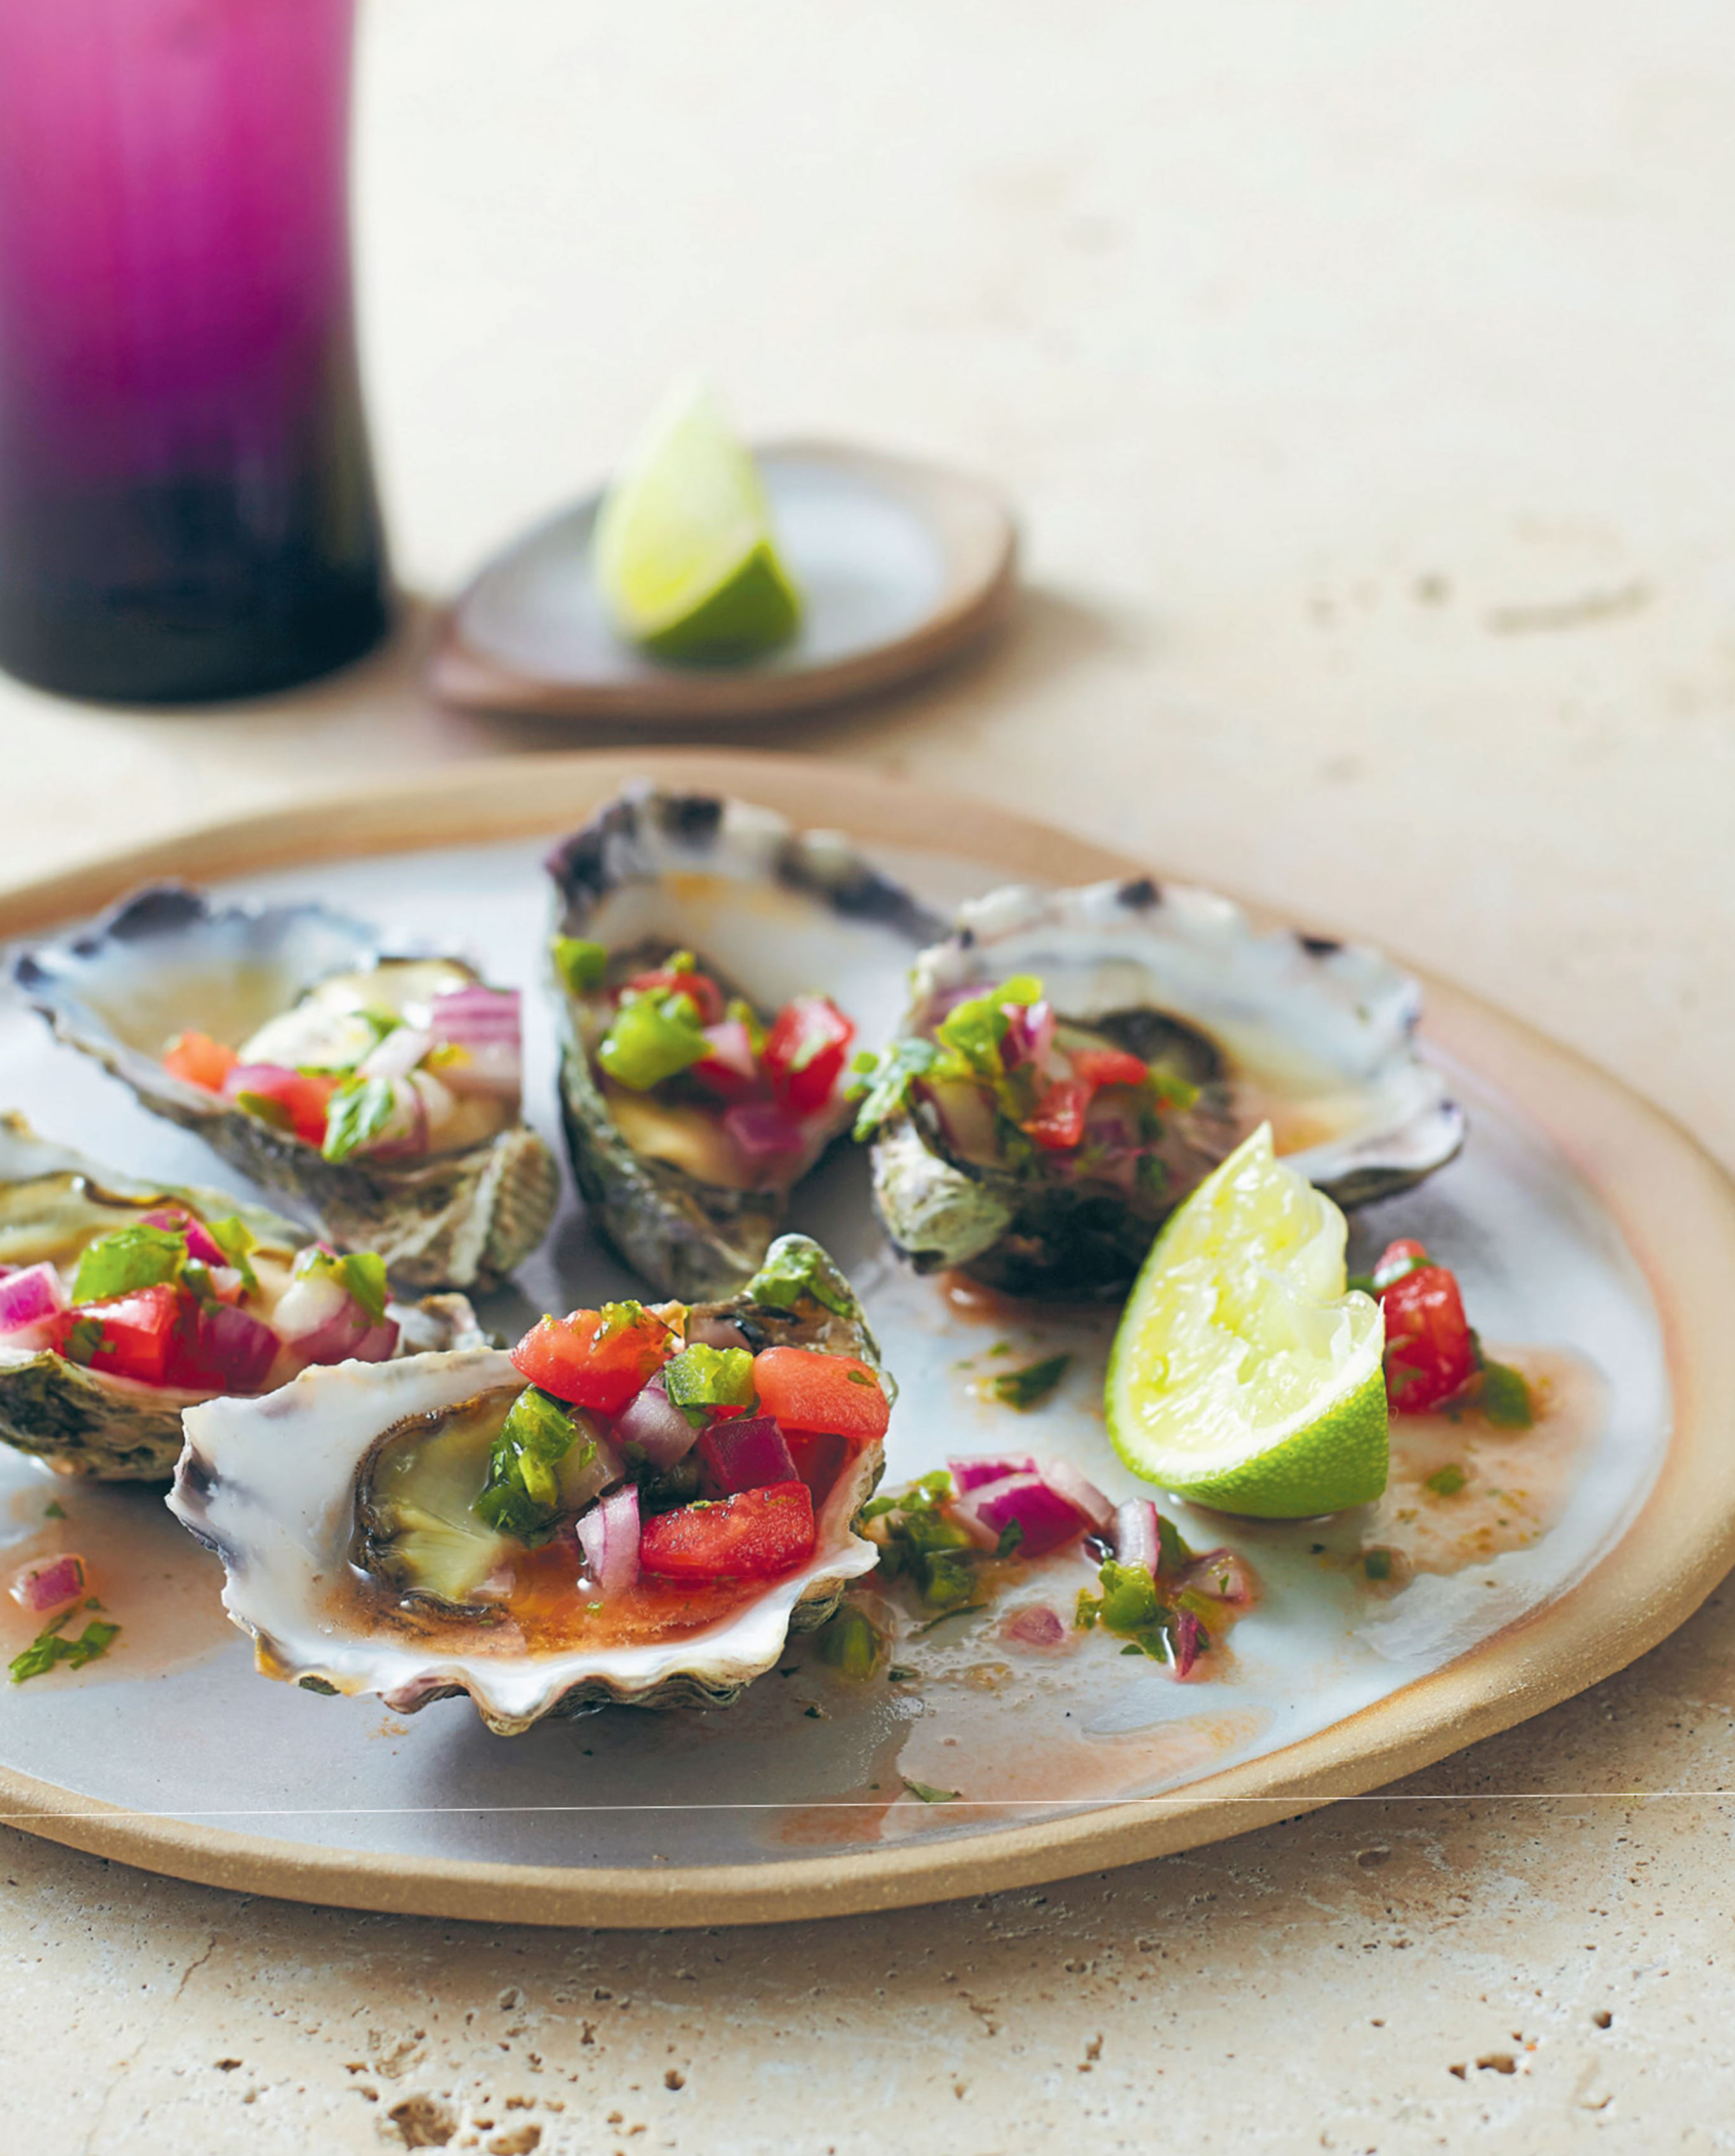 Oysters with pico de gallo